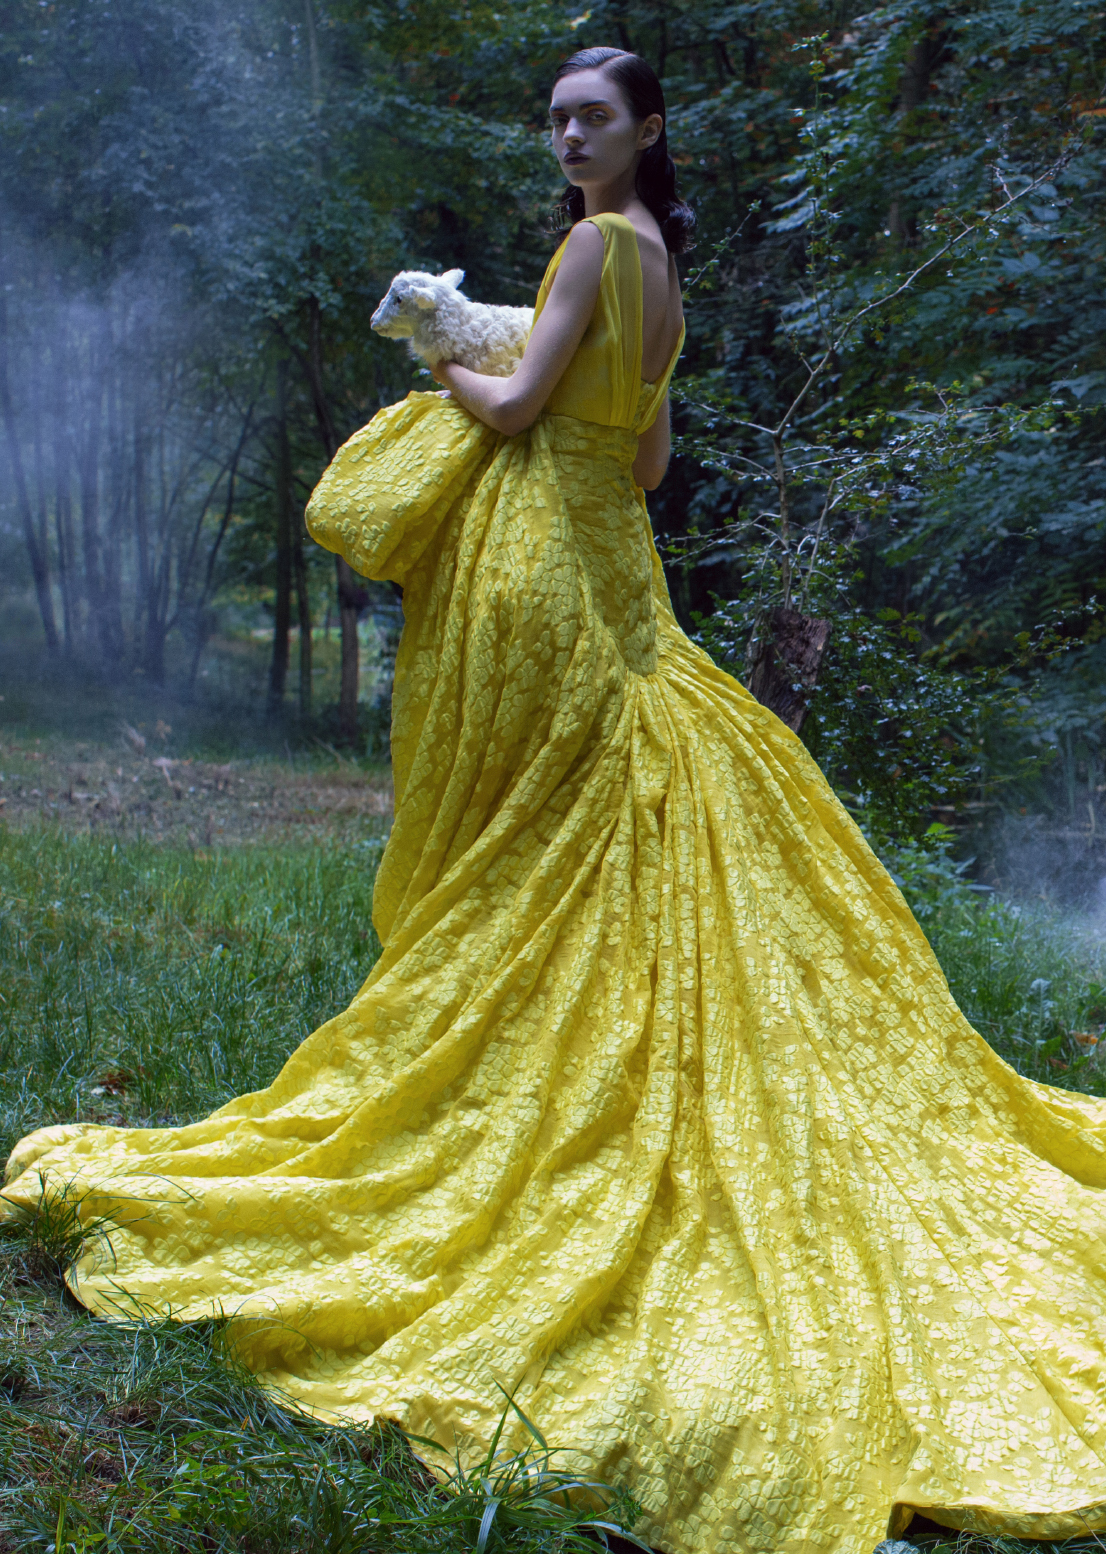 ♥ Romance of the Maiden ♥ couture gowns worthy of a fairytale - Harper's Bazaar China